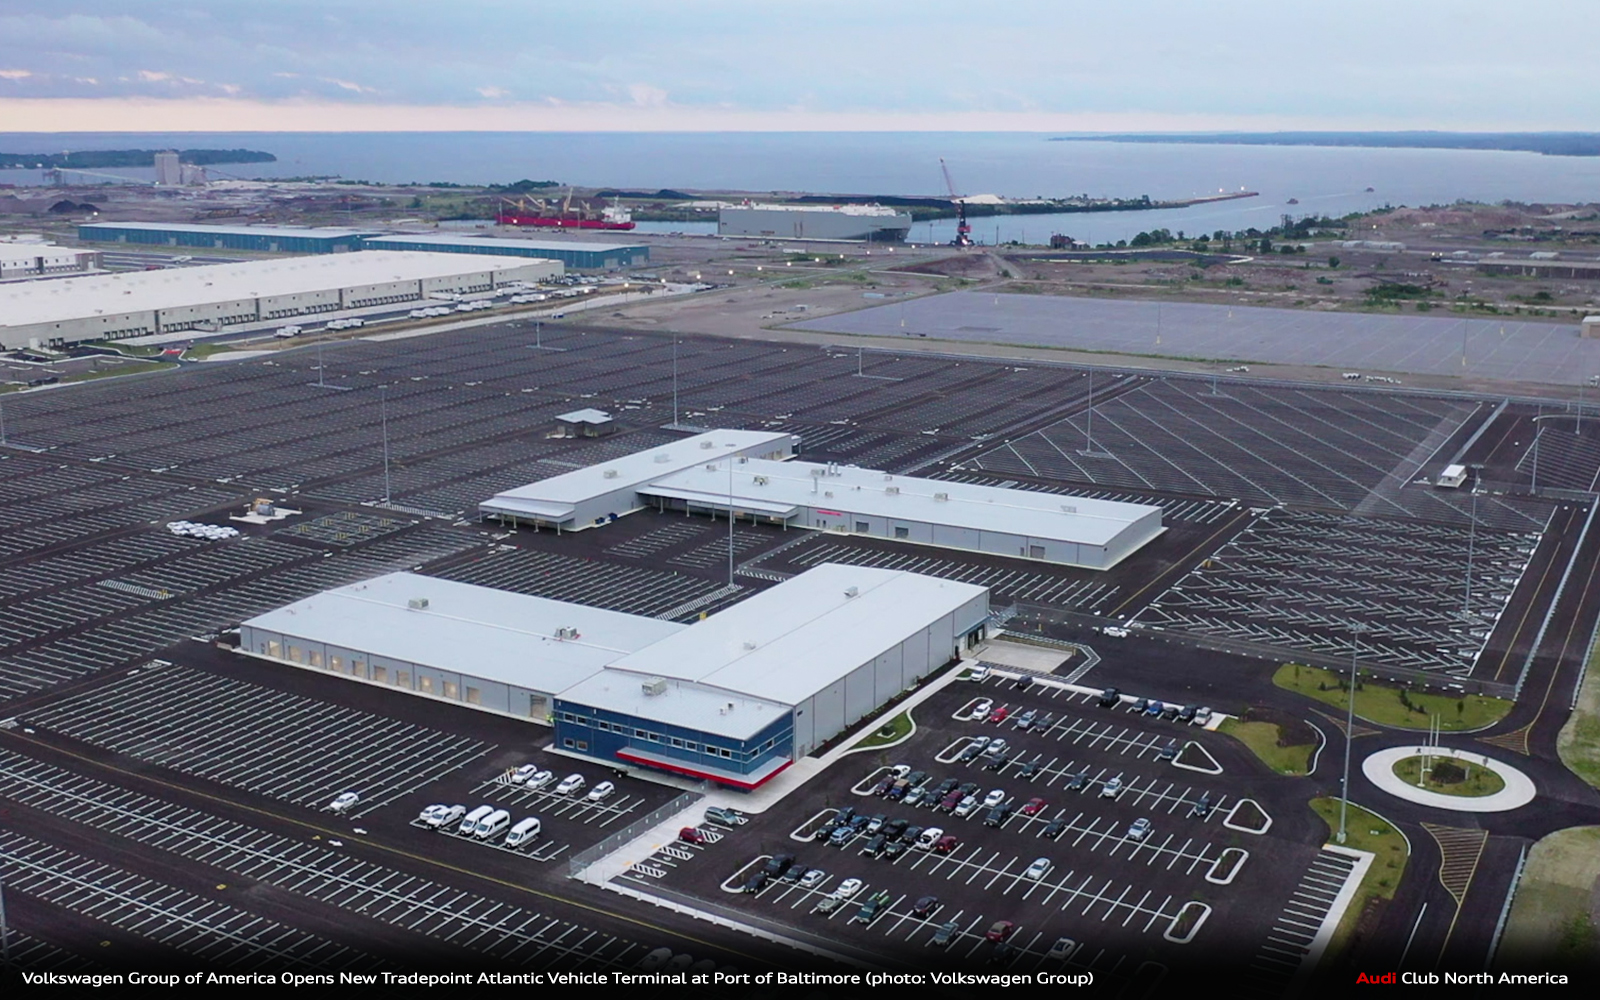 Volkswagen Group of America Opens New Tradepoint Atlantic Vehicle Terminal at Port of Baltimore